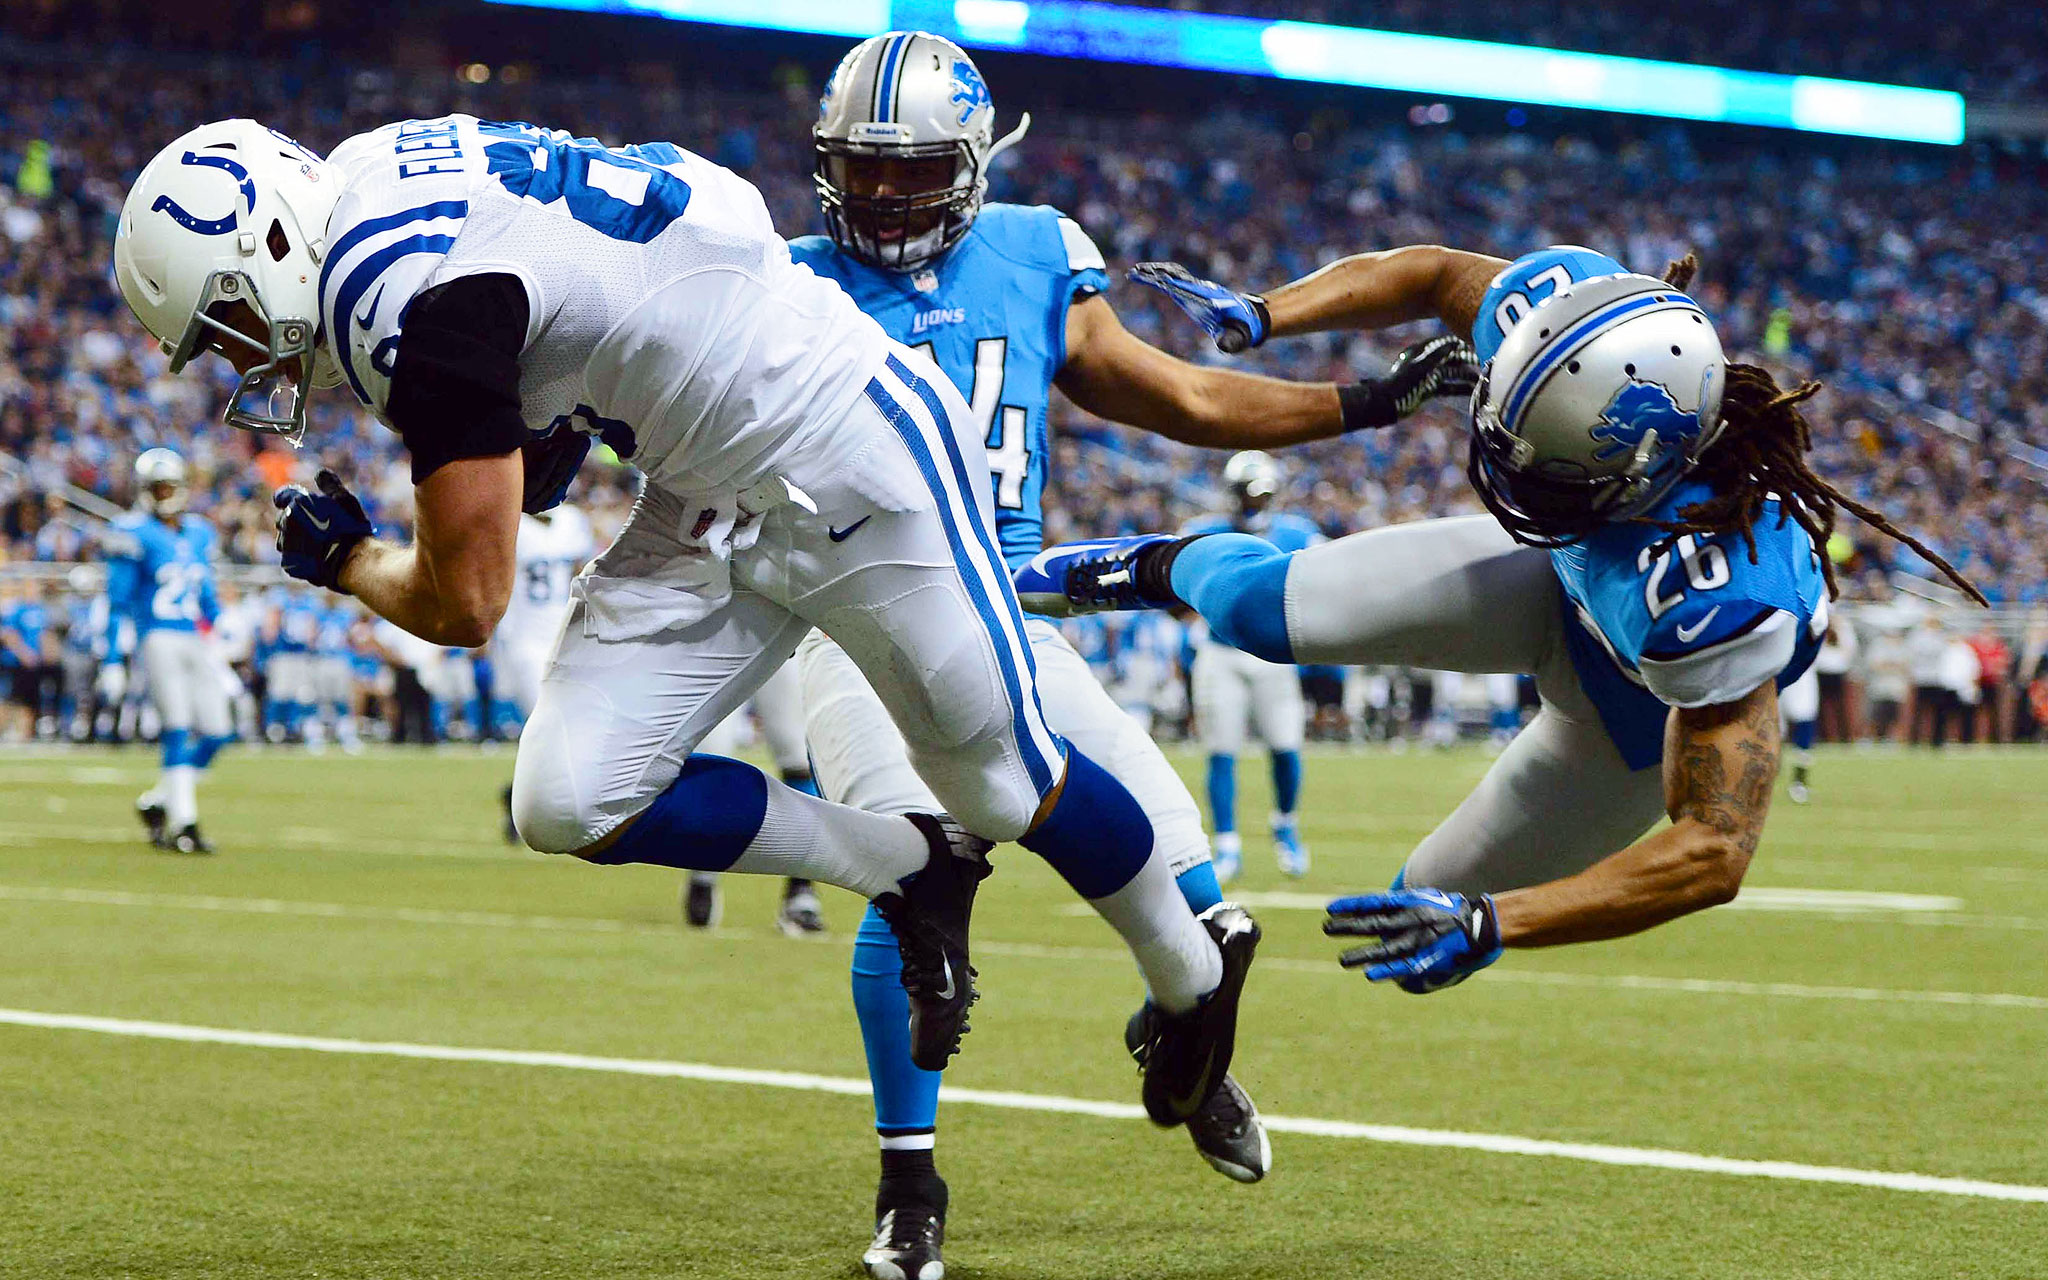 Nfl Breaking The Plane Nfl Week 13 Gallery Espn